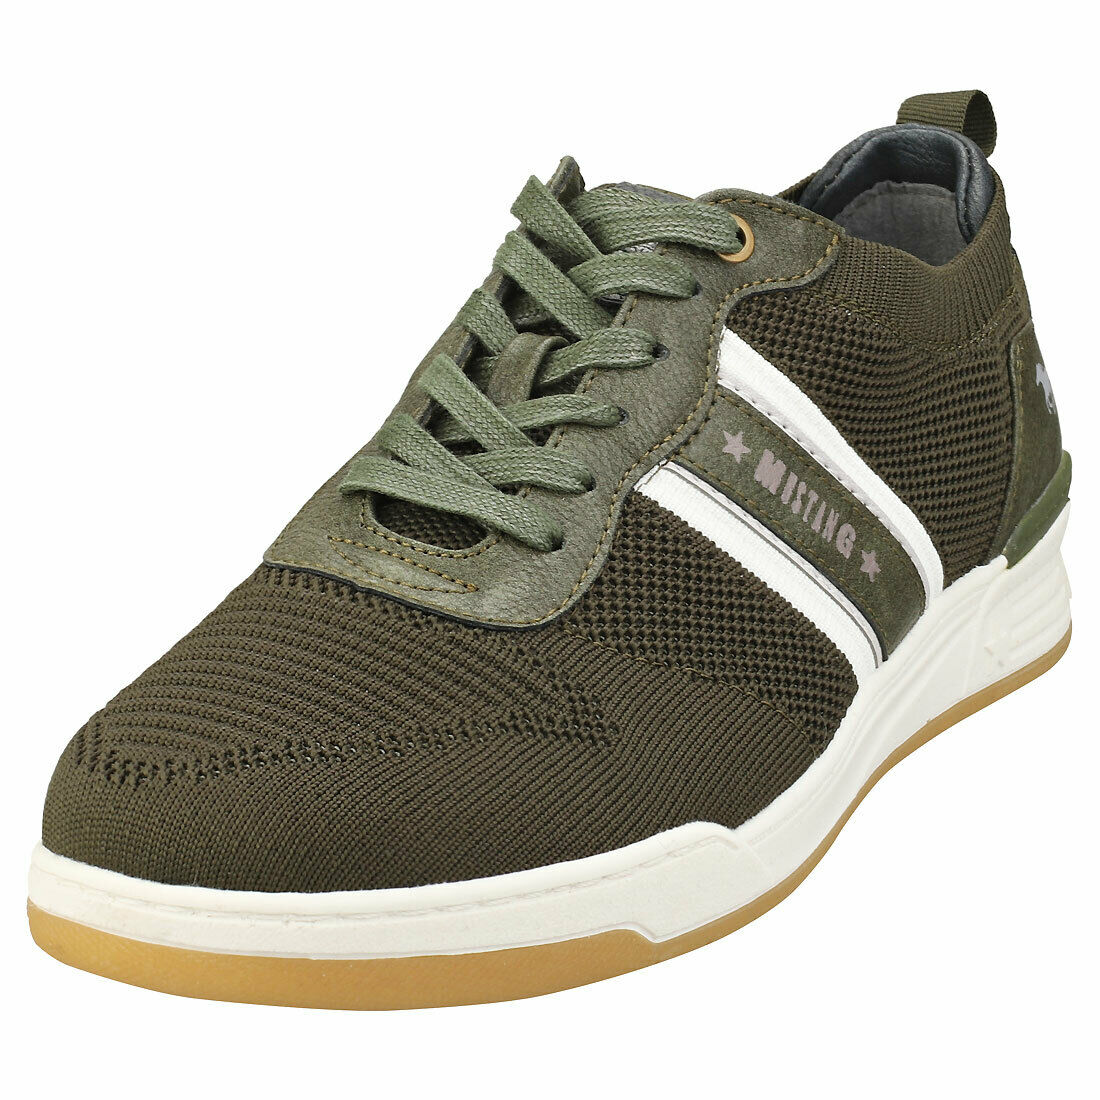 Mustang Low Top Sneaker Mens Olive Synthetic & Textile Casual Trainers